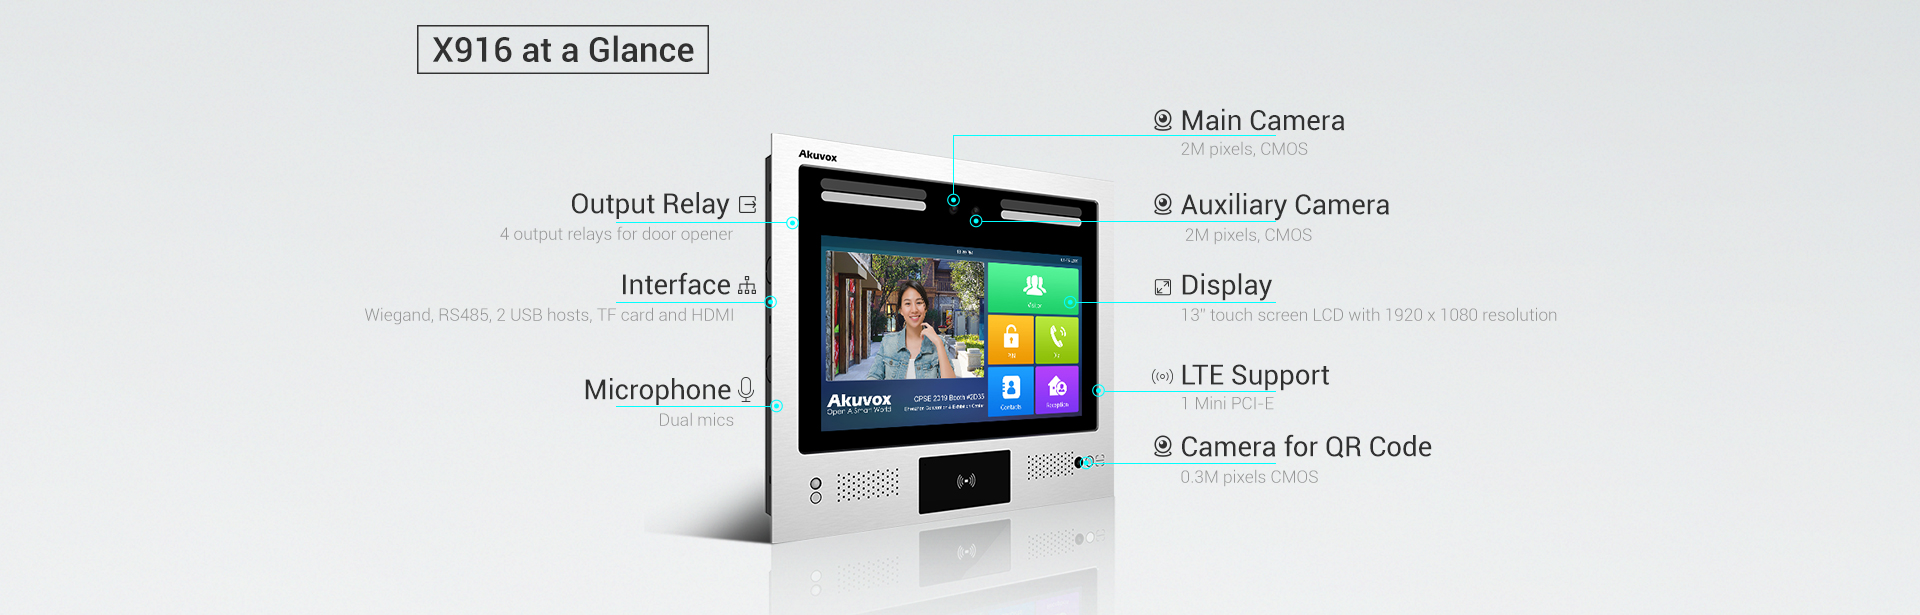 X916 The World's First Android Intercom with Starlight Camera